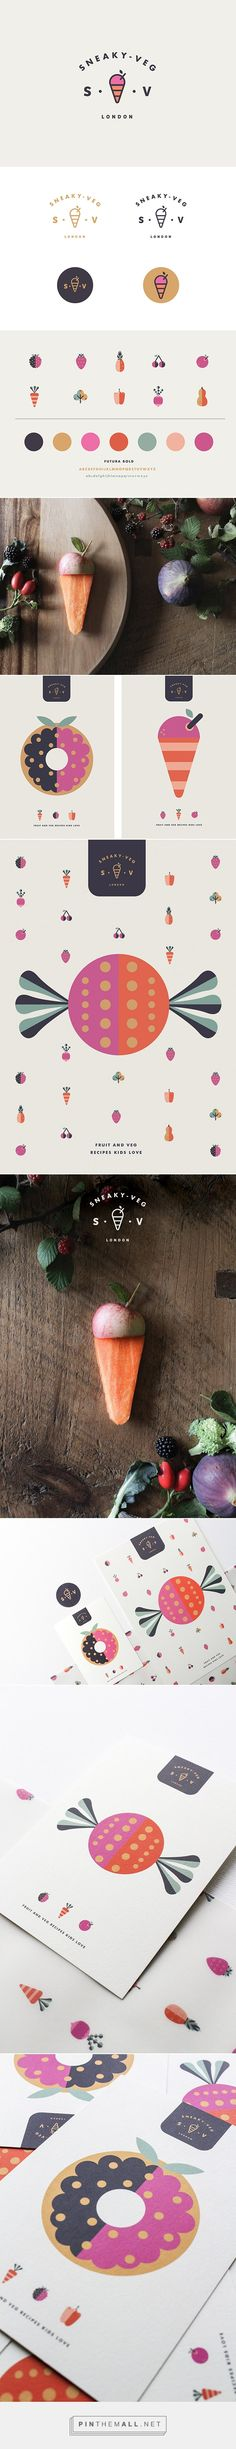 Sneaky Veg Brand Identity on Behance. | branding | design